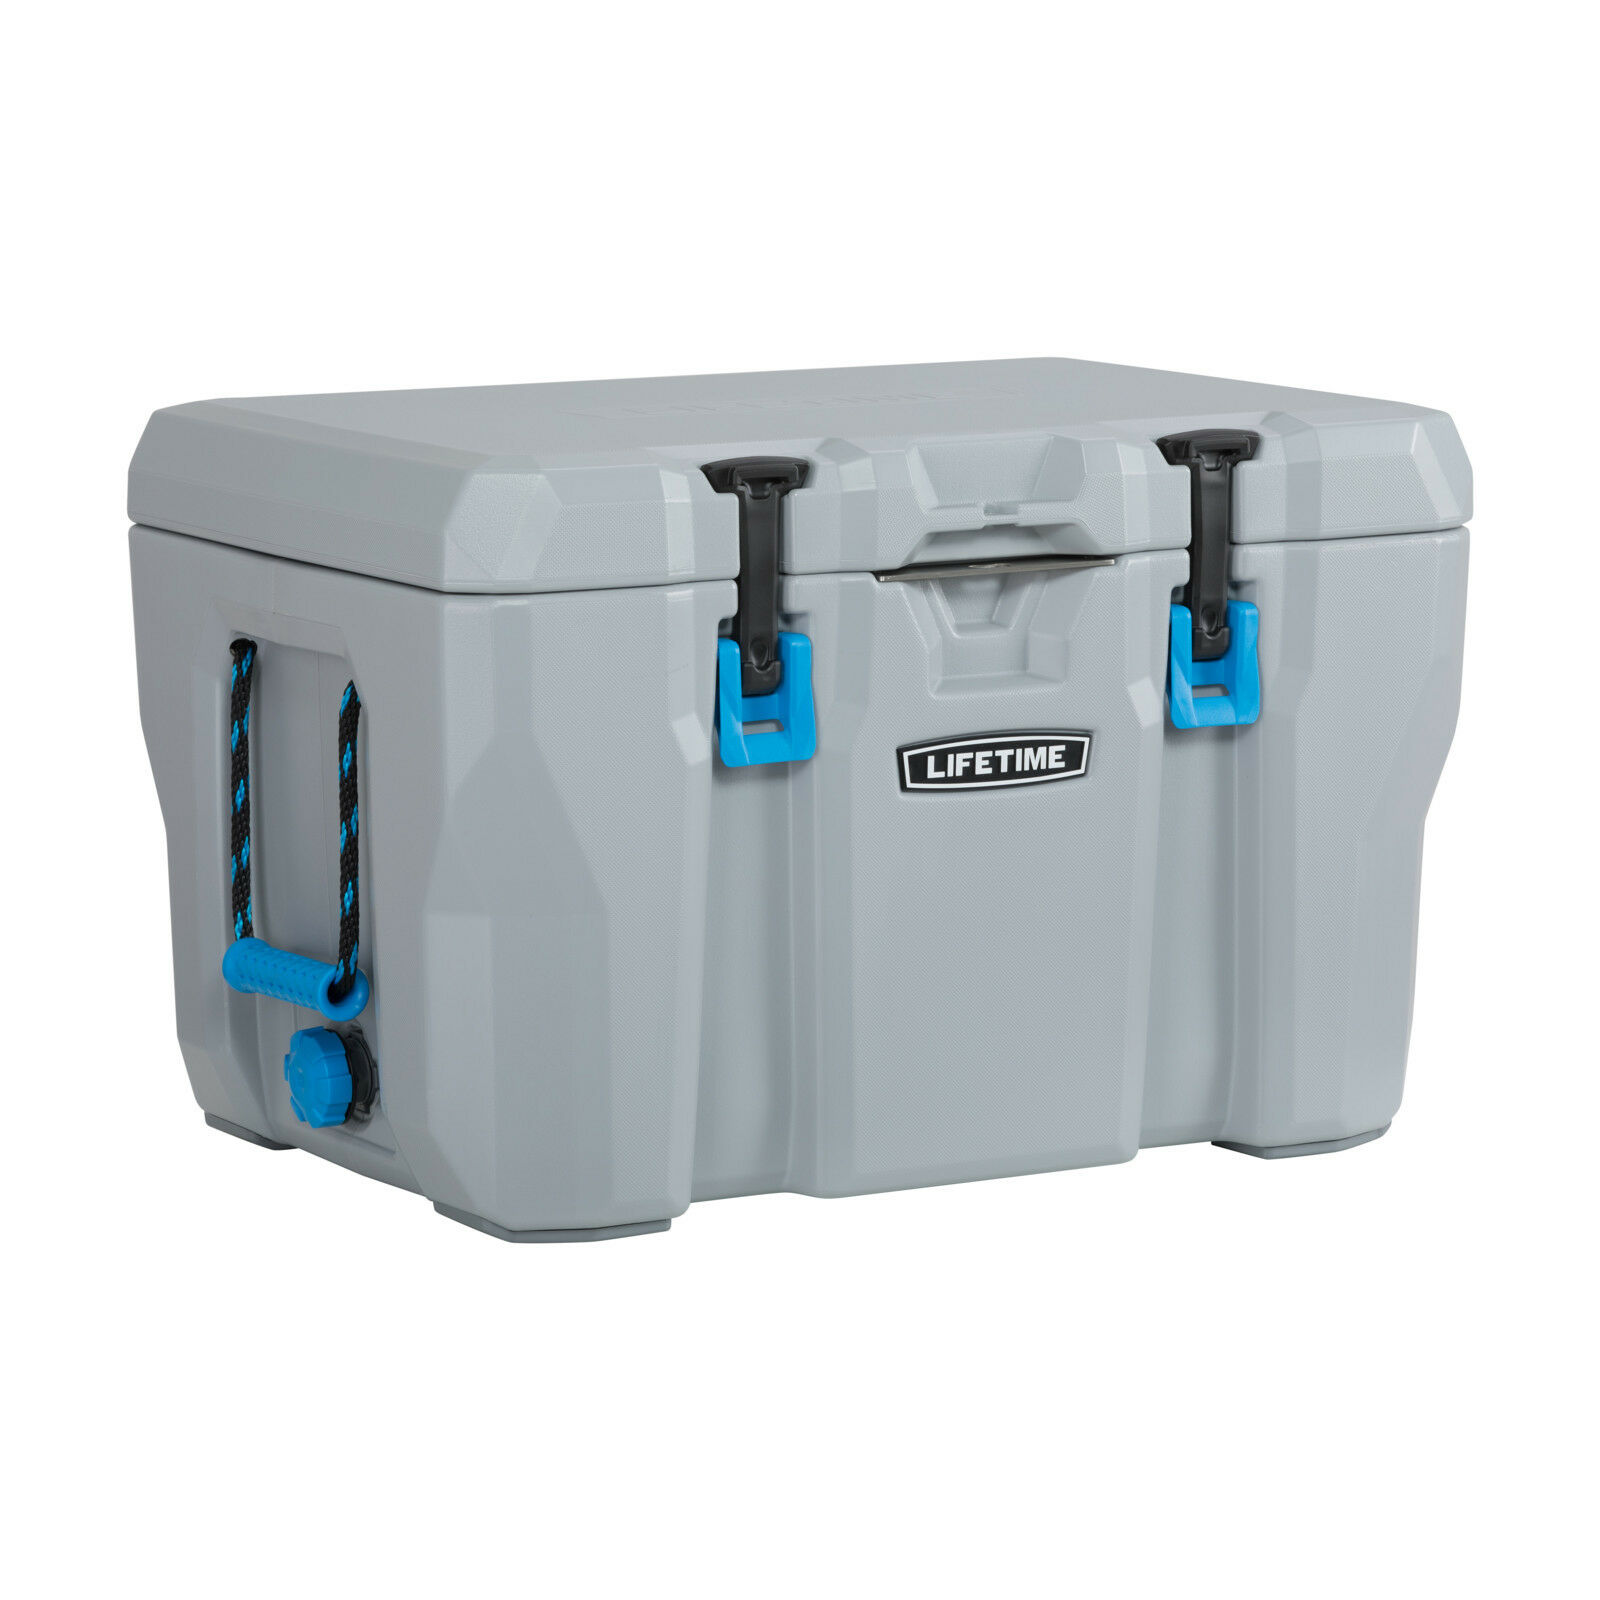 Cooler Camping Retention Outdoor Fishing 7 Day Ice Retention Camping Chest Cold Insulation Picnic 12ebb4